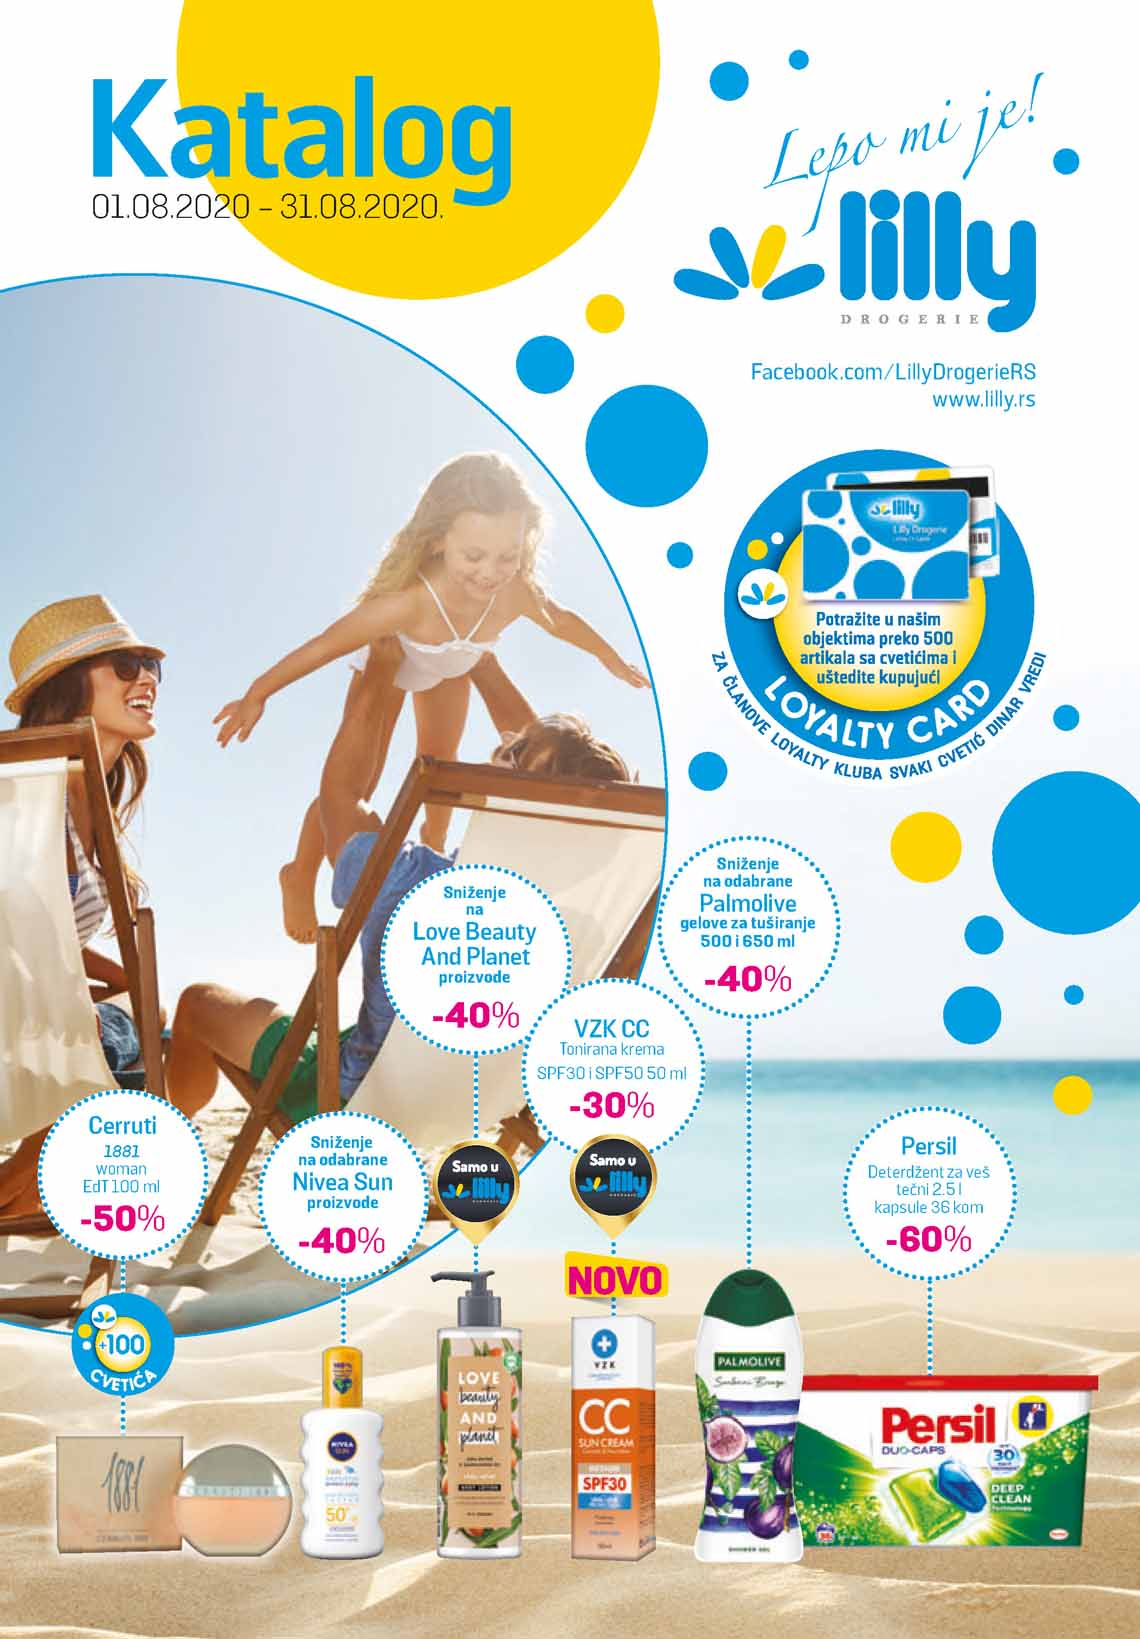 LILLY DROGERIE Katalog - Super akcija do 31.08.2020.